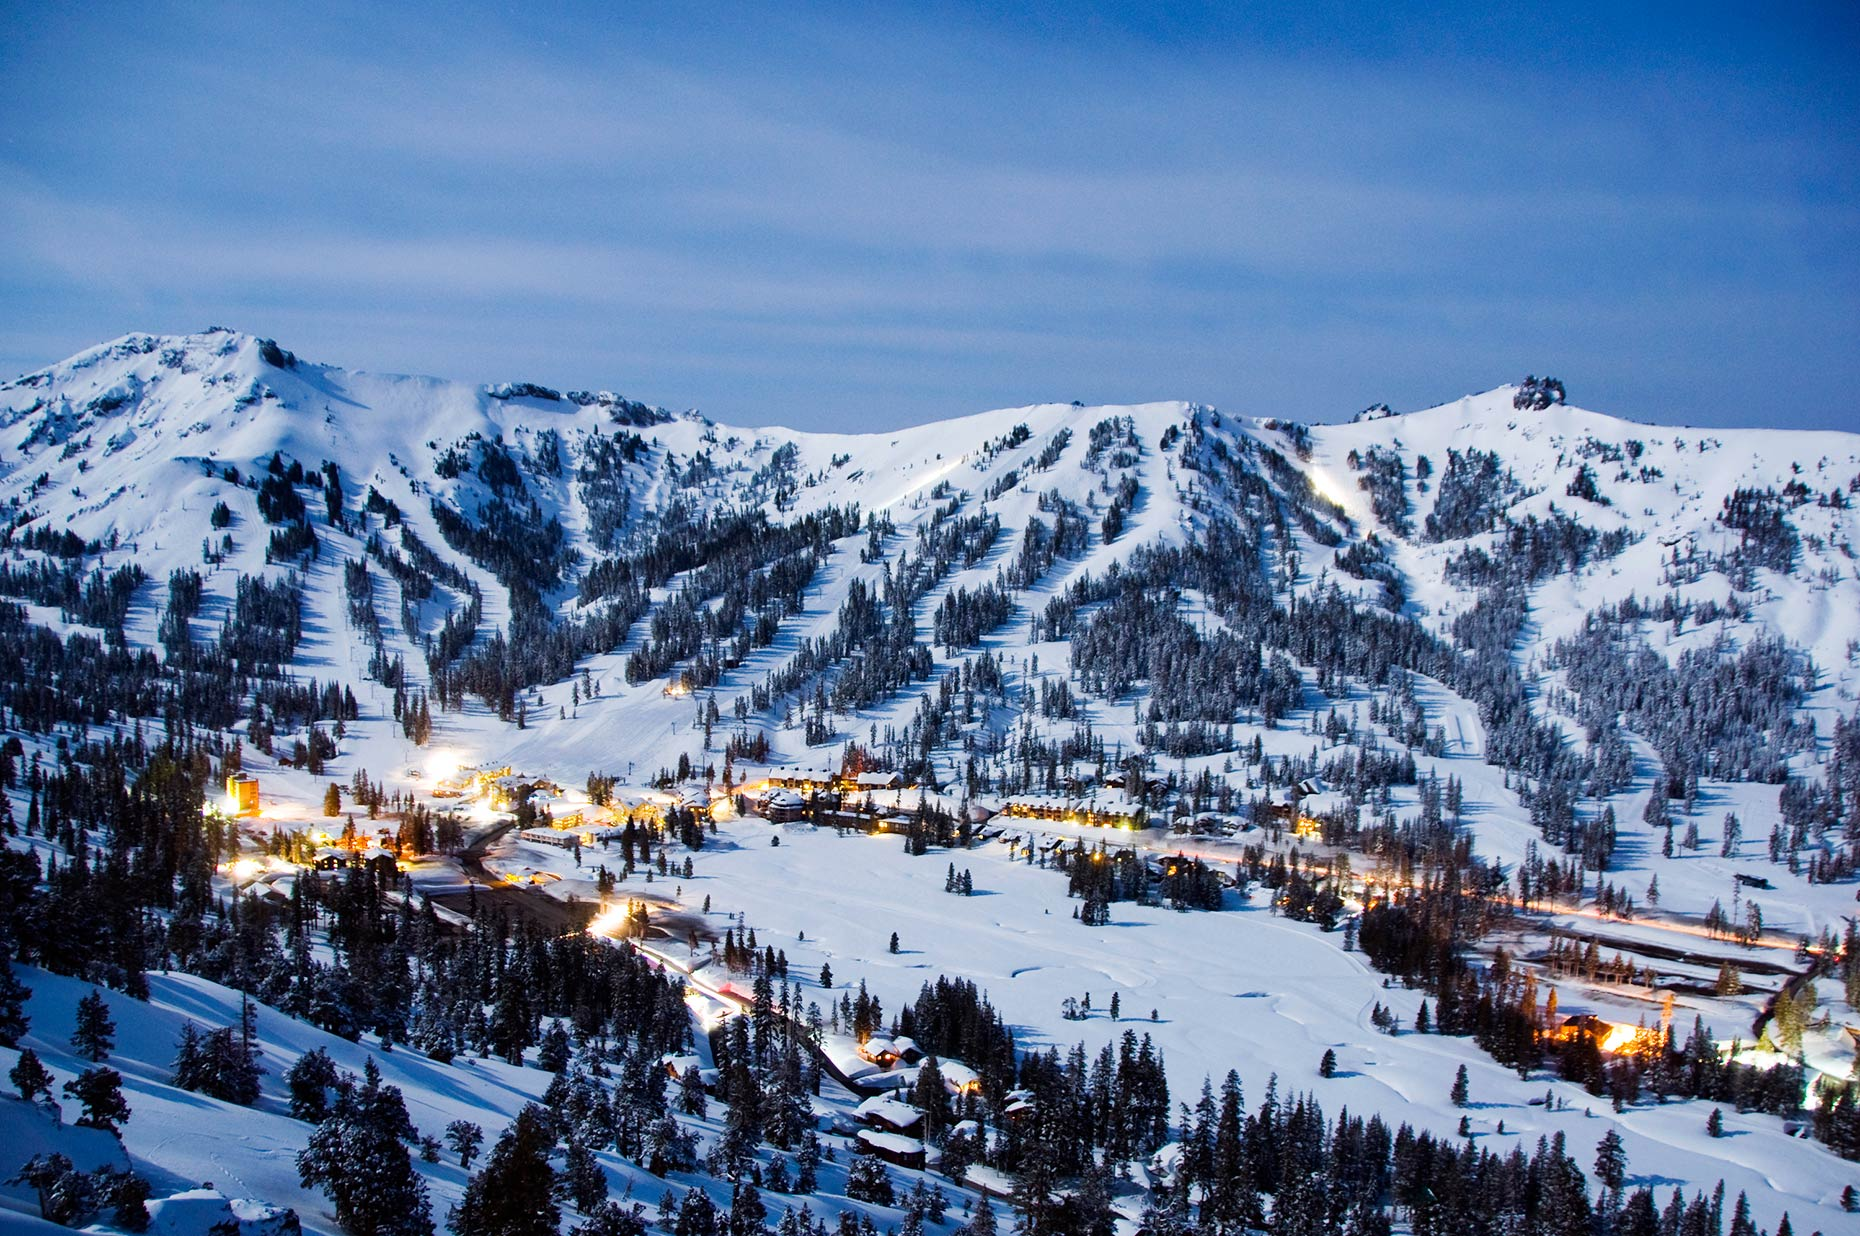 Kirkwood Mountain Resort At Night - California